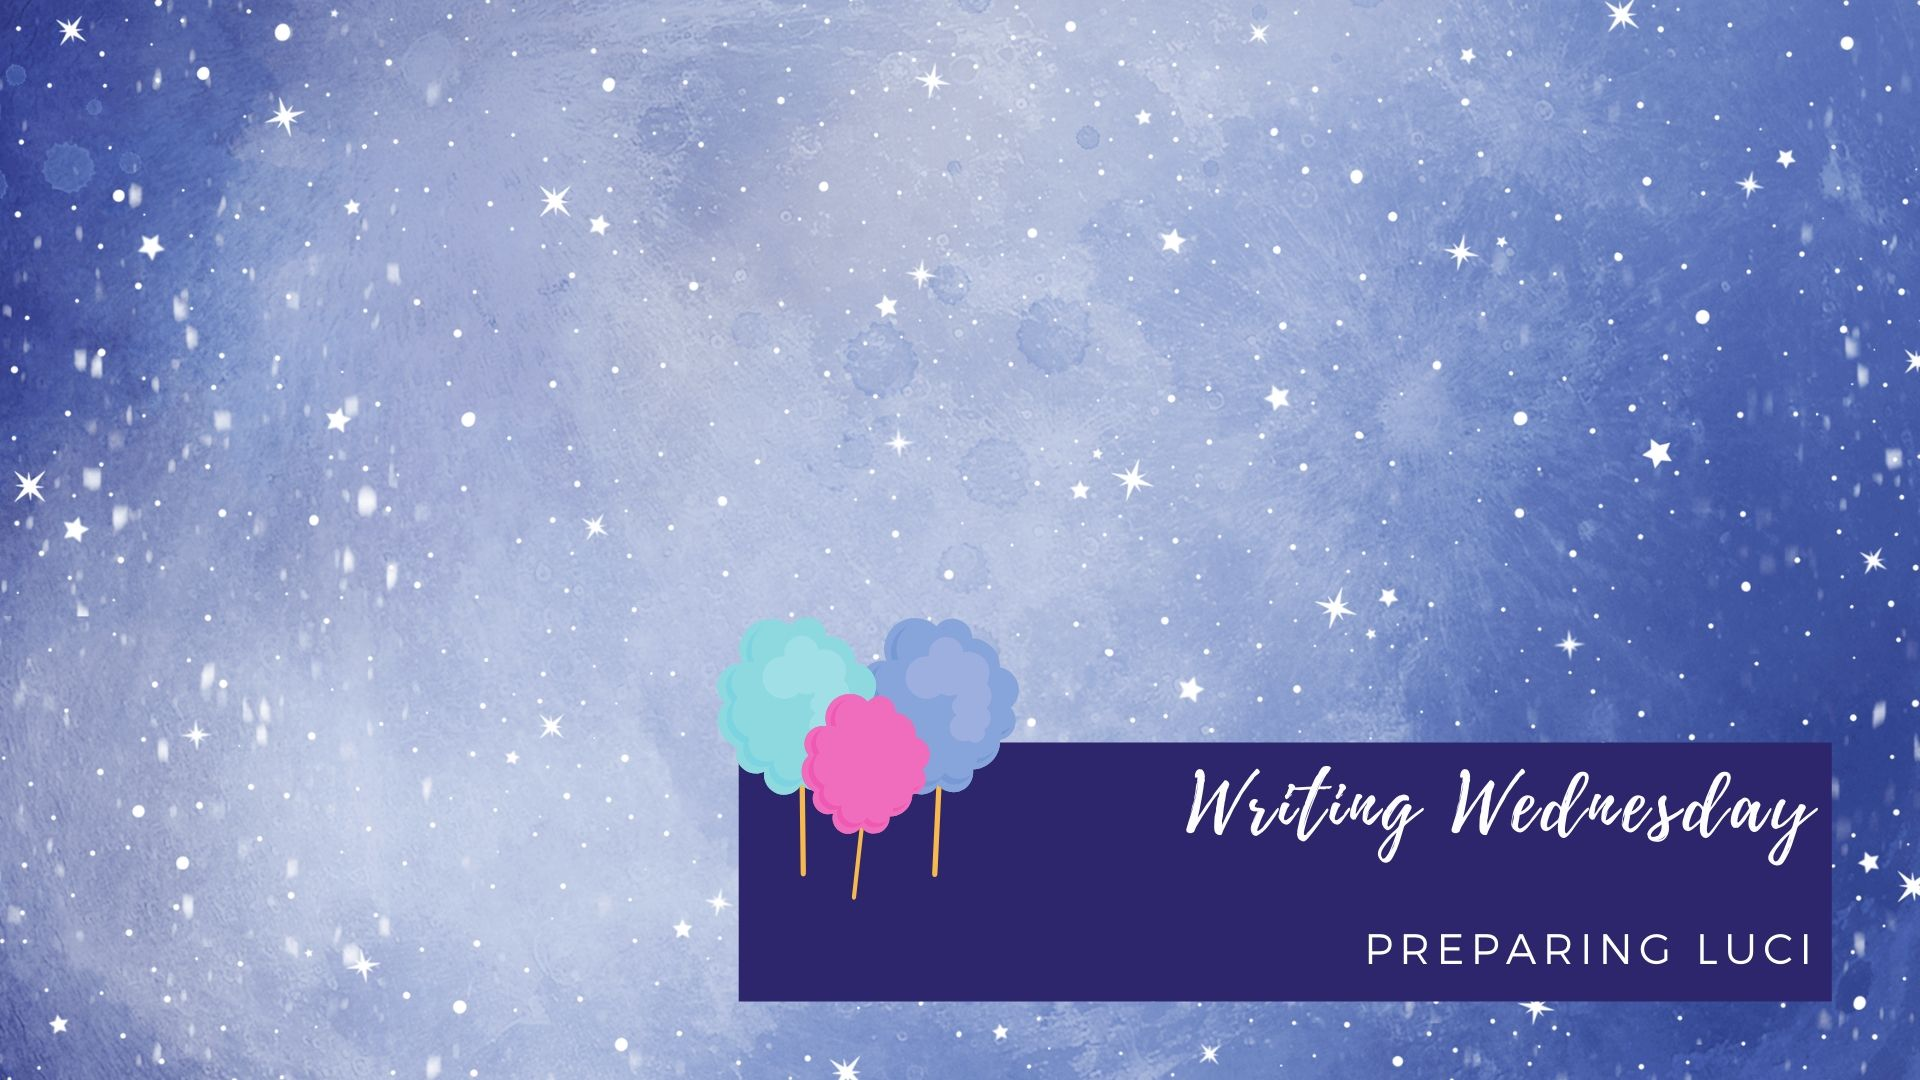 You are currently viewing Writing Wednesday: Preparing Luci